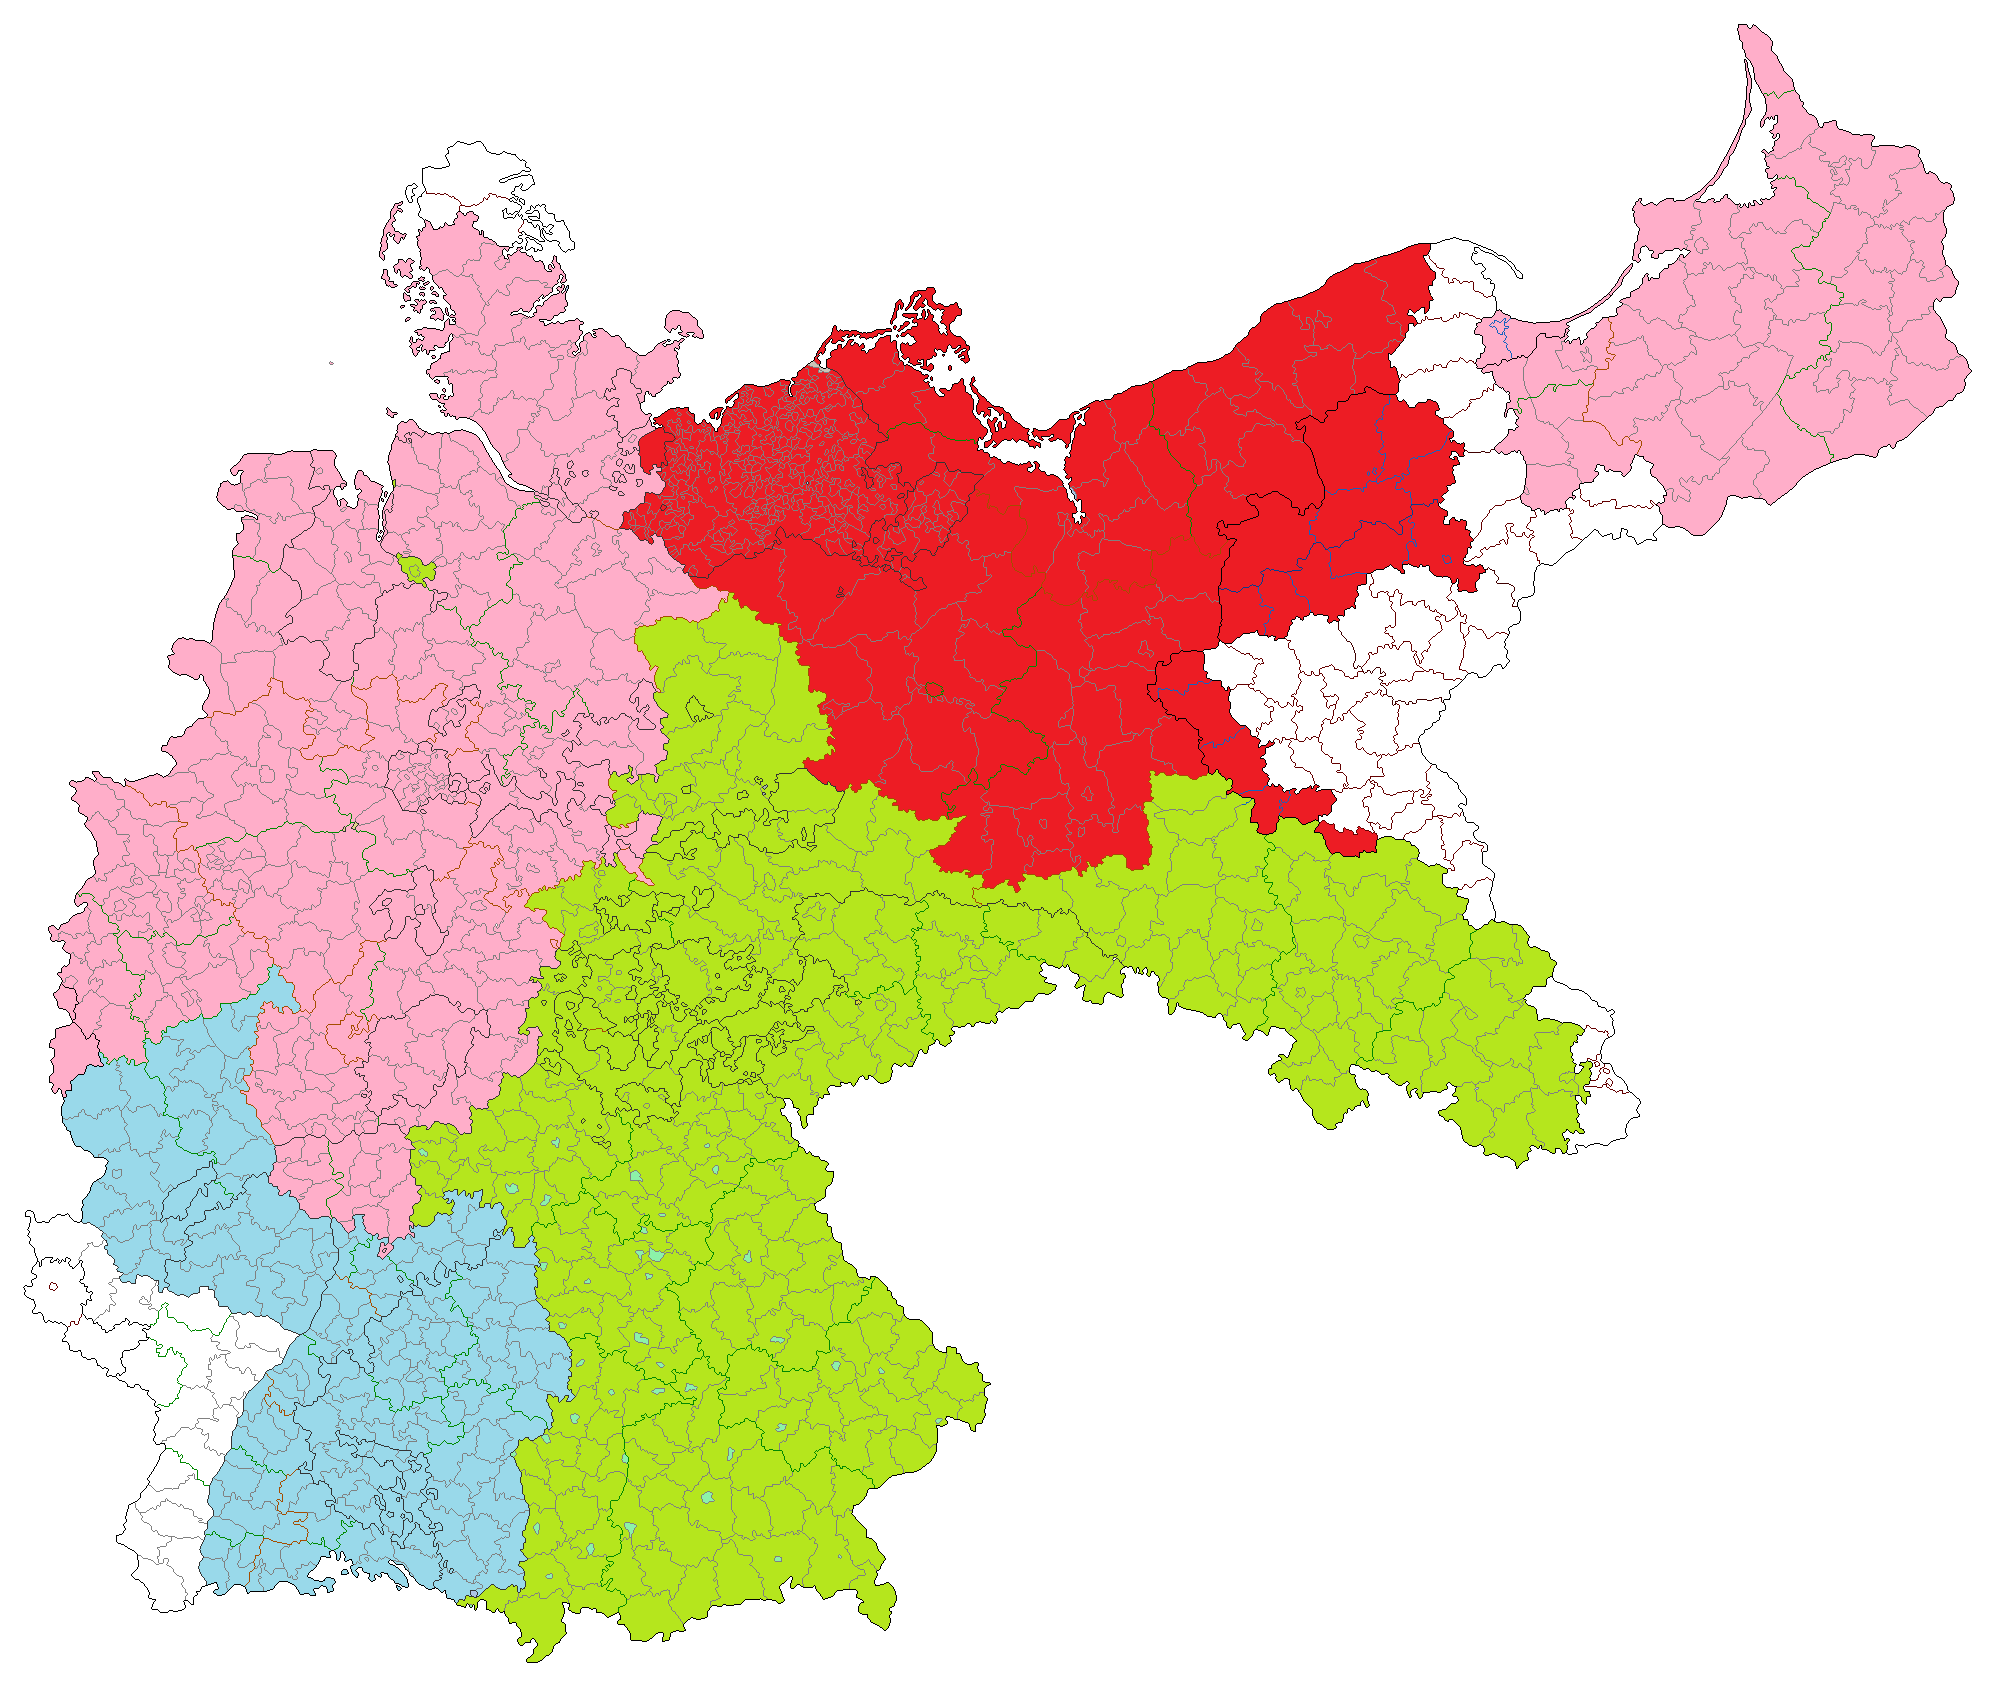 Germany Occupation Zones By JJohnson On DeviantArt - Germany occupation zones map